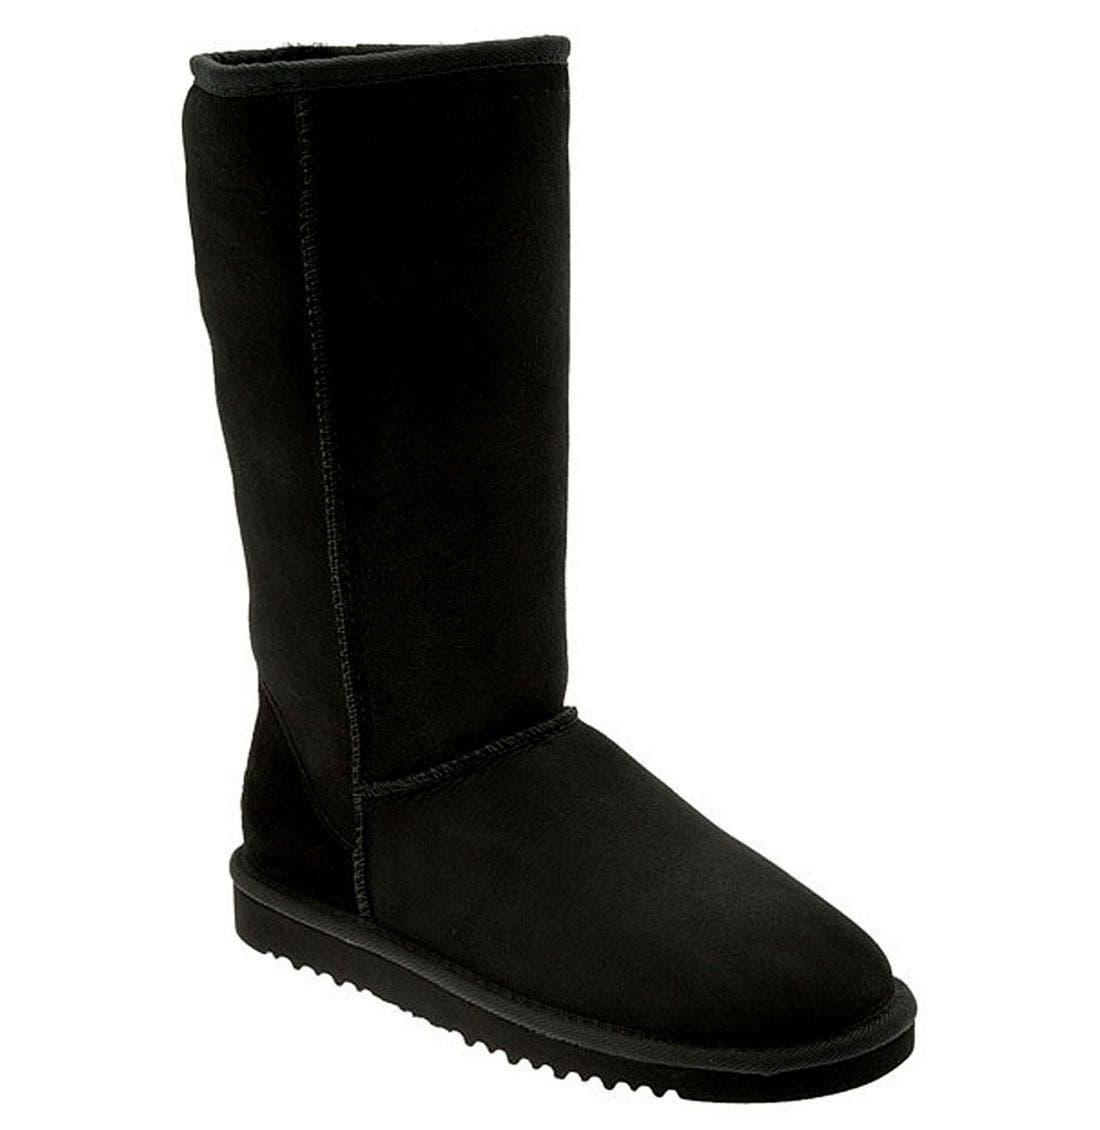 Alternate Image 1 Selected - UGG® 'Classic Tall' Boot (Women)(Nordstrom Exclusive)